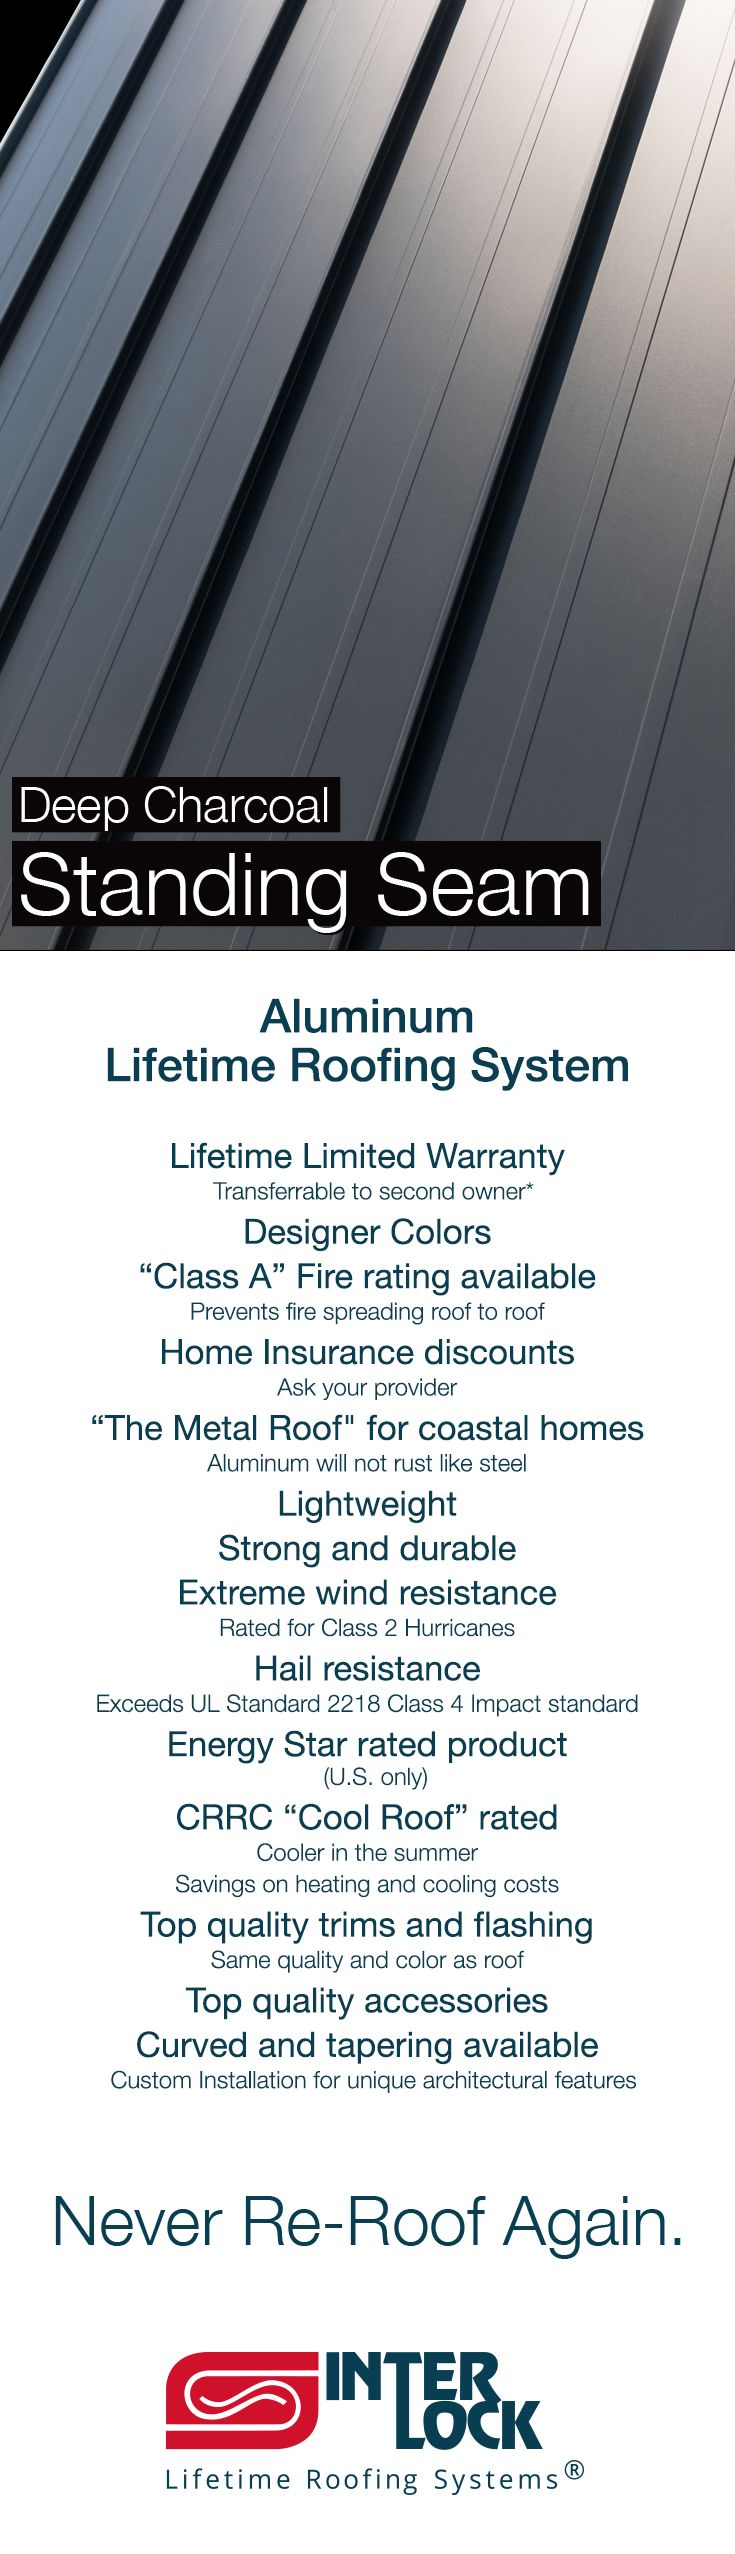 Beautiful metal roofing in designer colors.  Why Aluminum?  Because aluminum will not rust like steel.   Most features listed here are standard.   One standard feature is our coating system (Alunar) which is one of the best in the industry, and we coat both sides.   The Lifetime Limited Warranty is non-prorated, and transferrable to a 2nd owner good for 50 years.  Find out more.